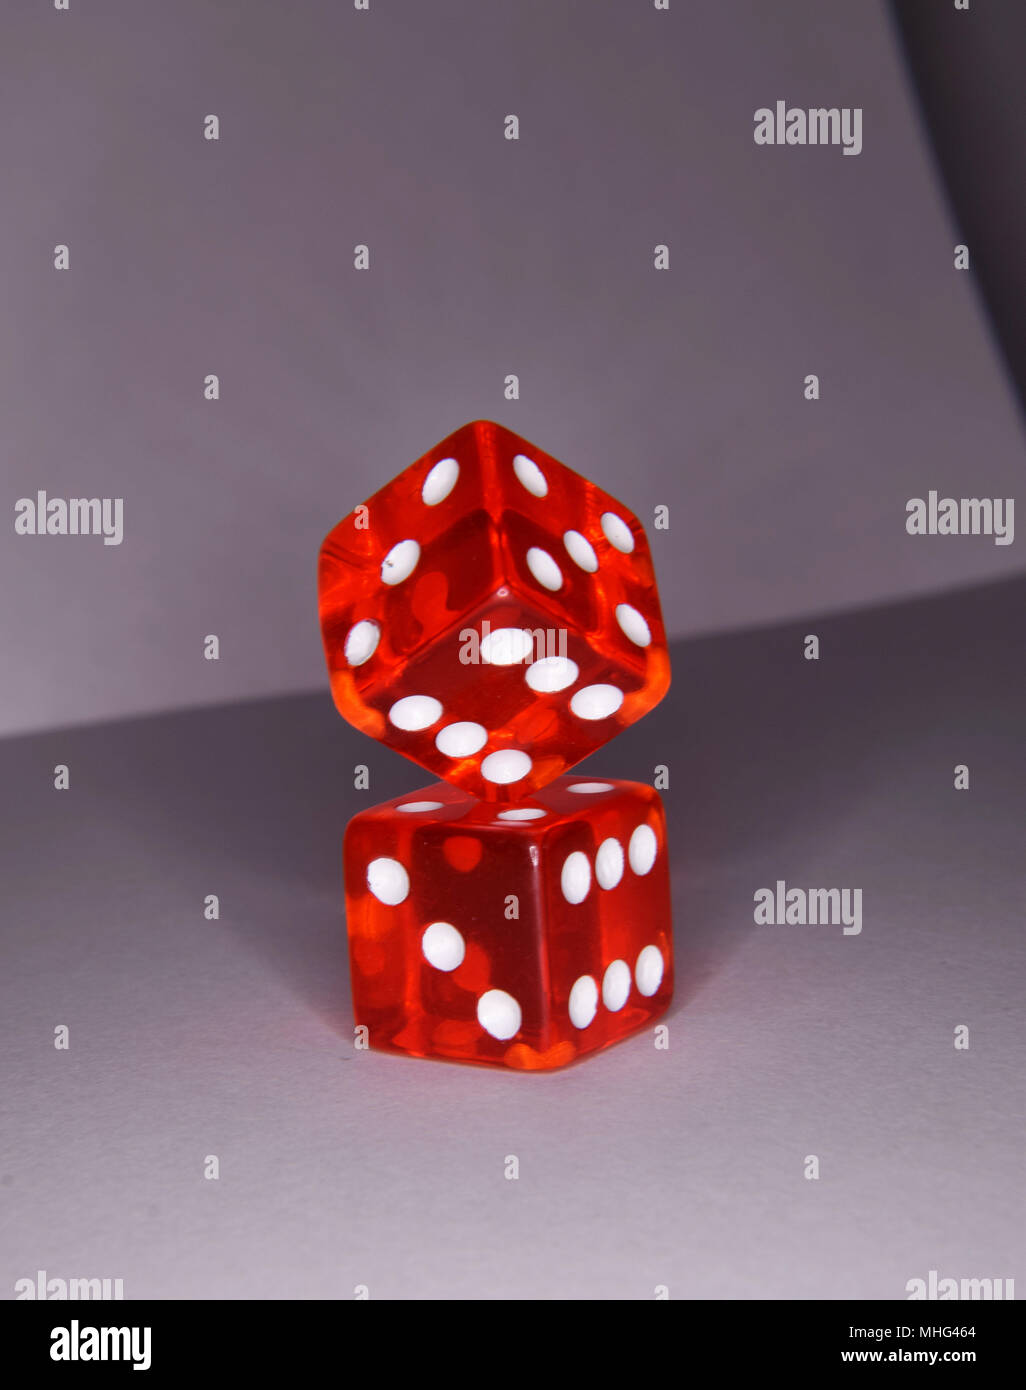 Balancing red luminescent casino gambling dice - vibrant colors and box composition Stock Photo